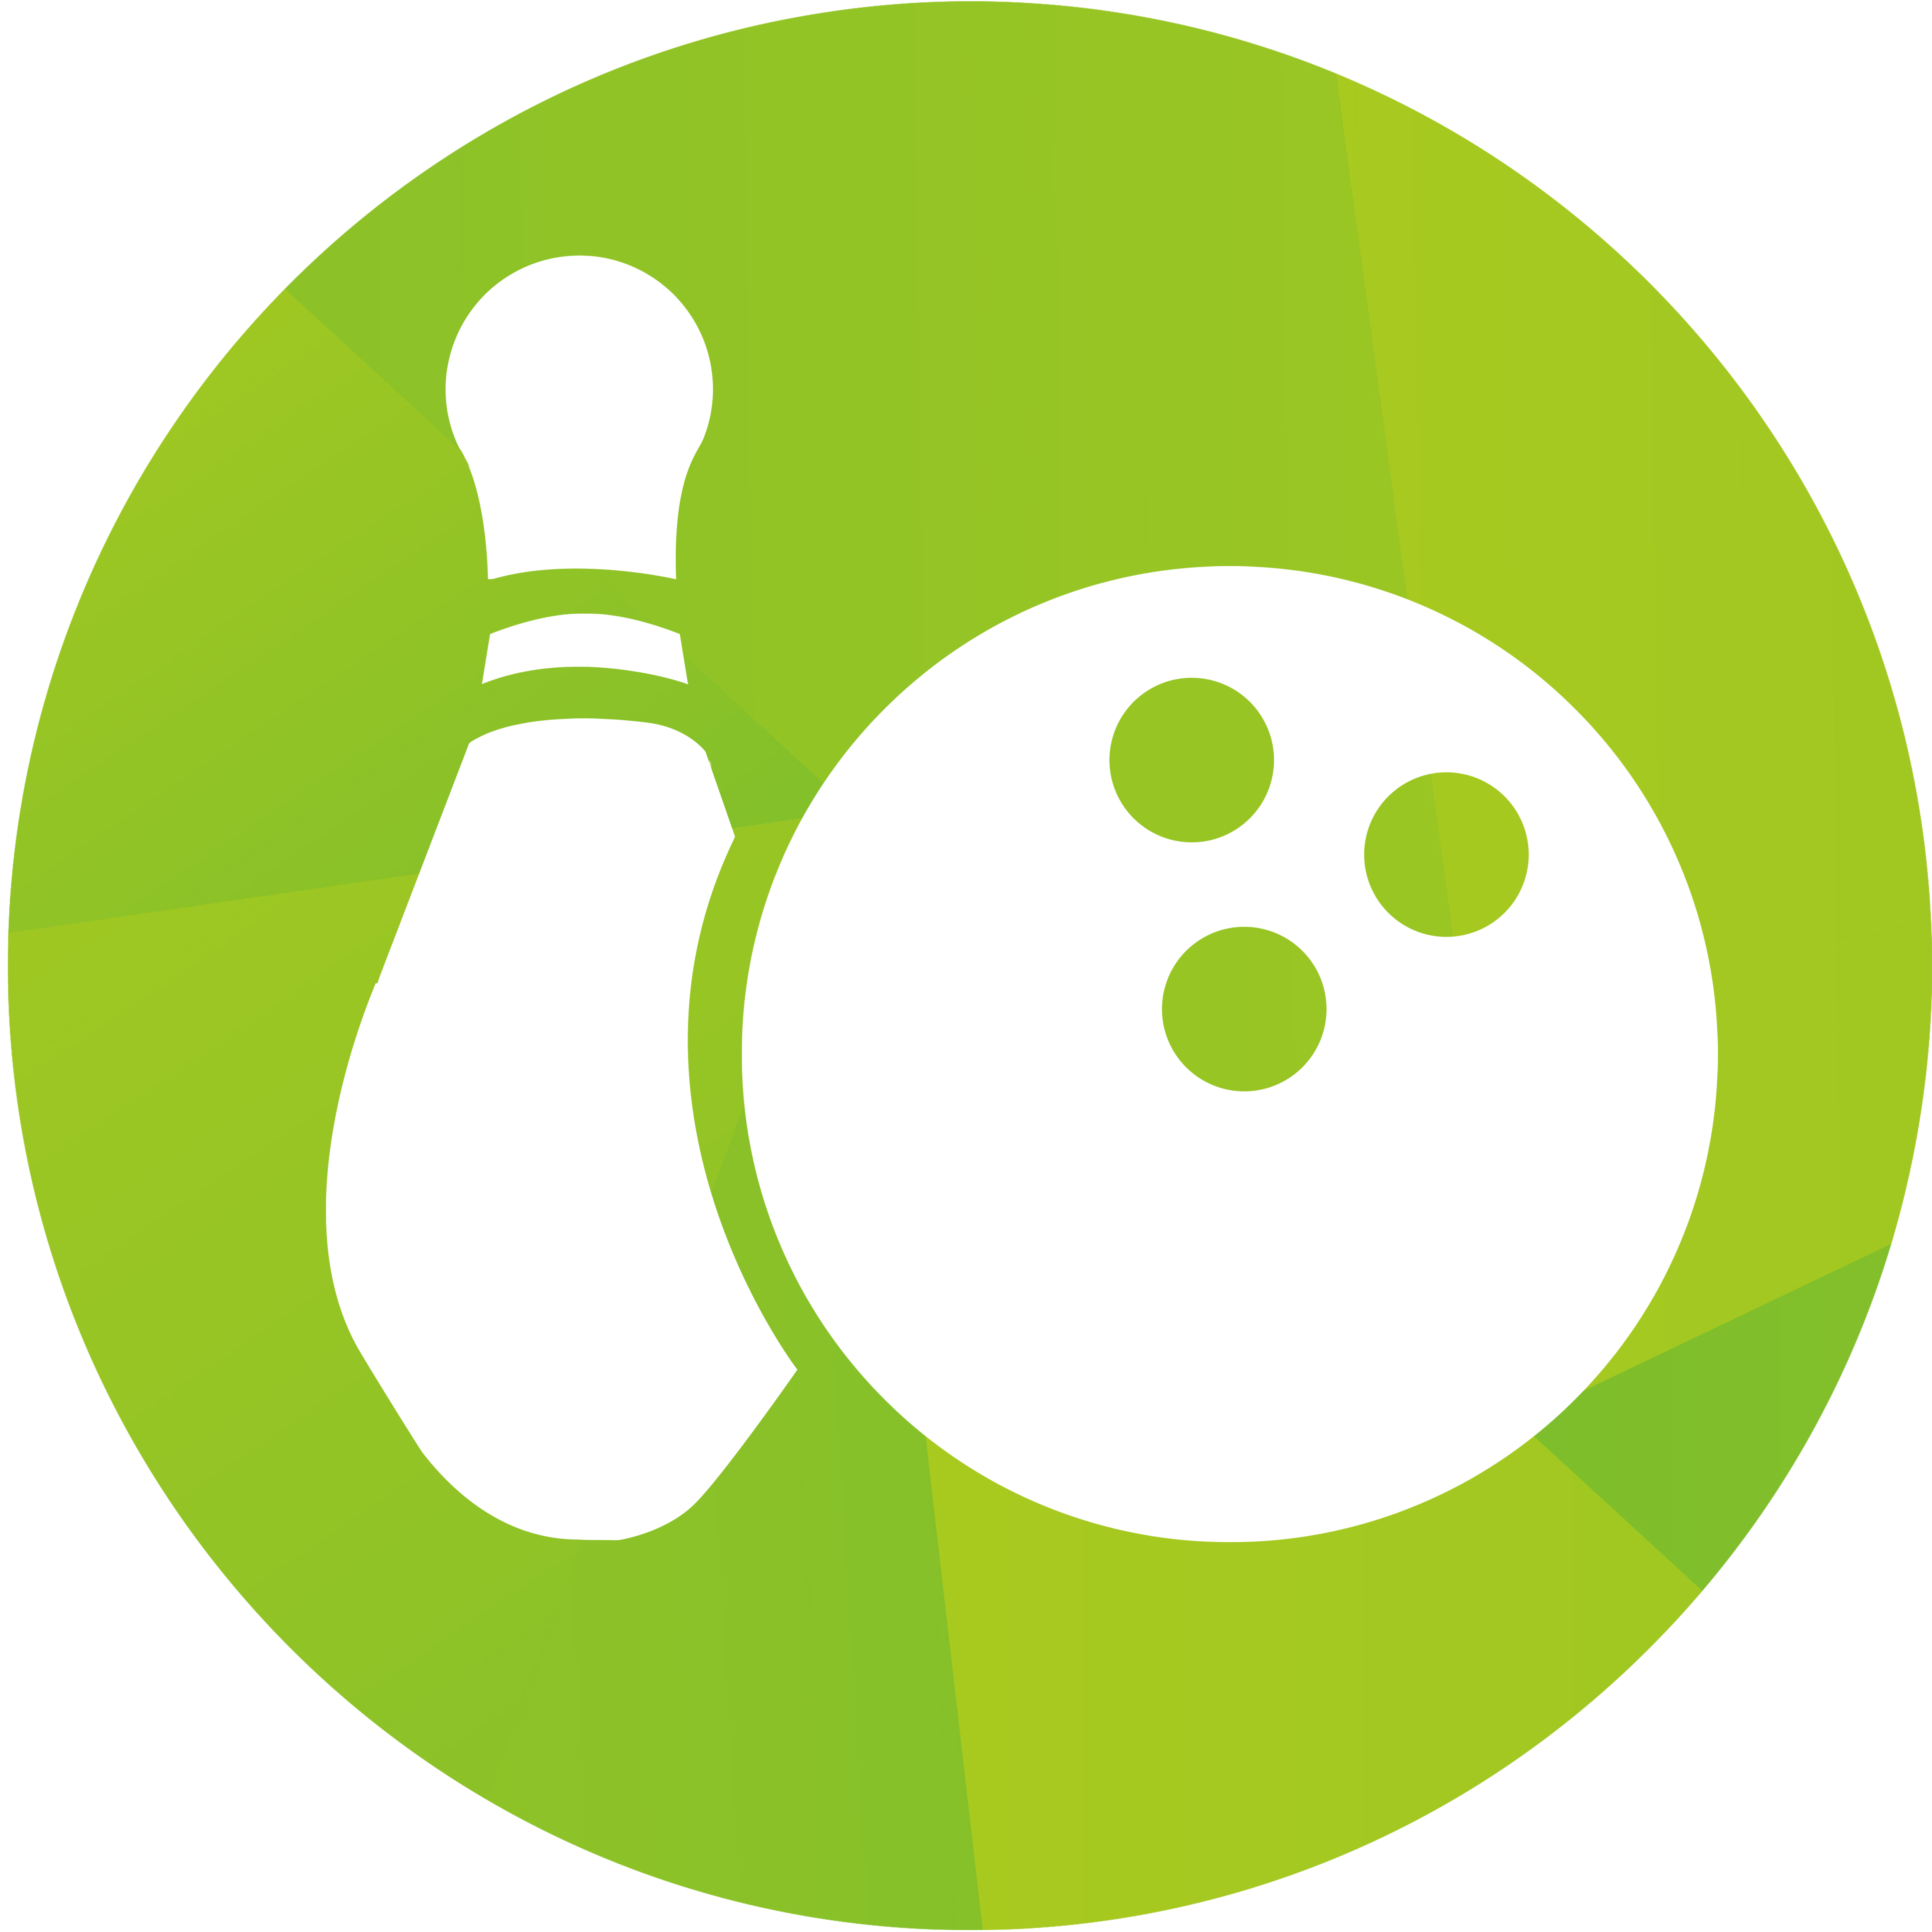 Sims 4 icons png. The bowling stuff ideas